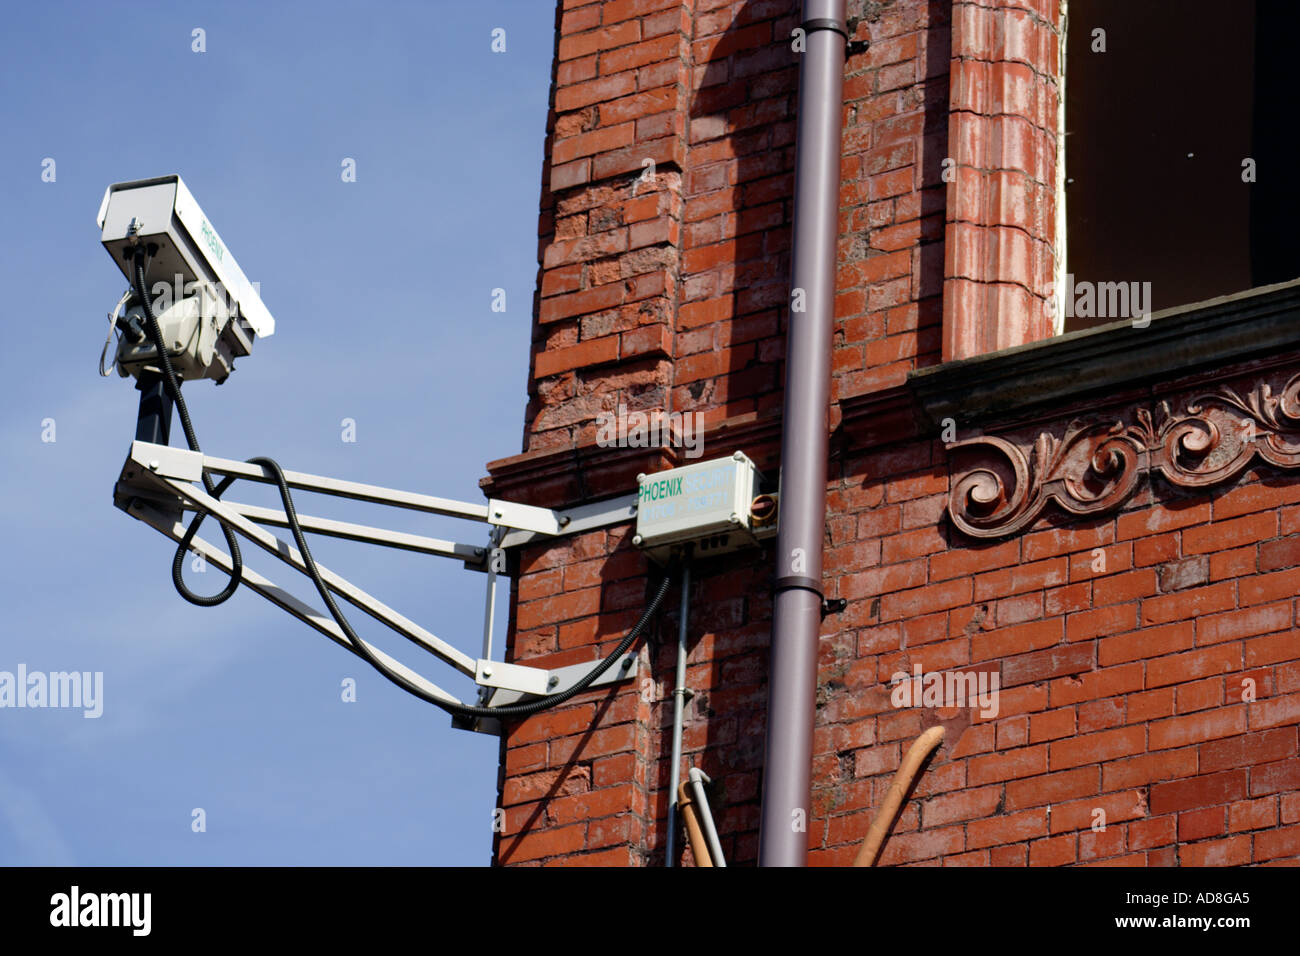 Big Brother style surveillance camera on a historic building in the UK - Stock Image